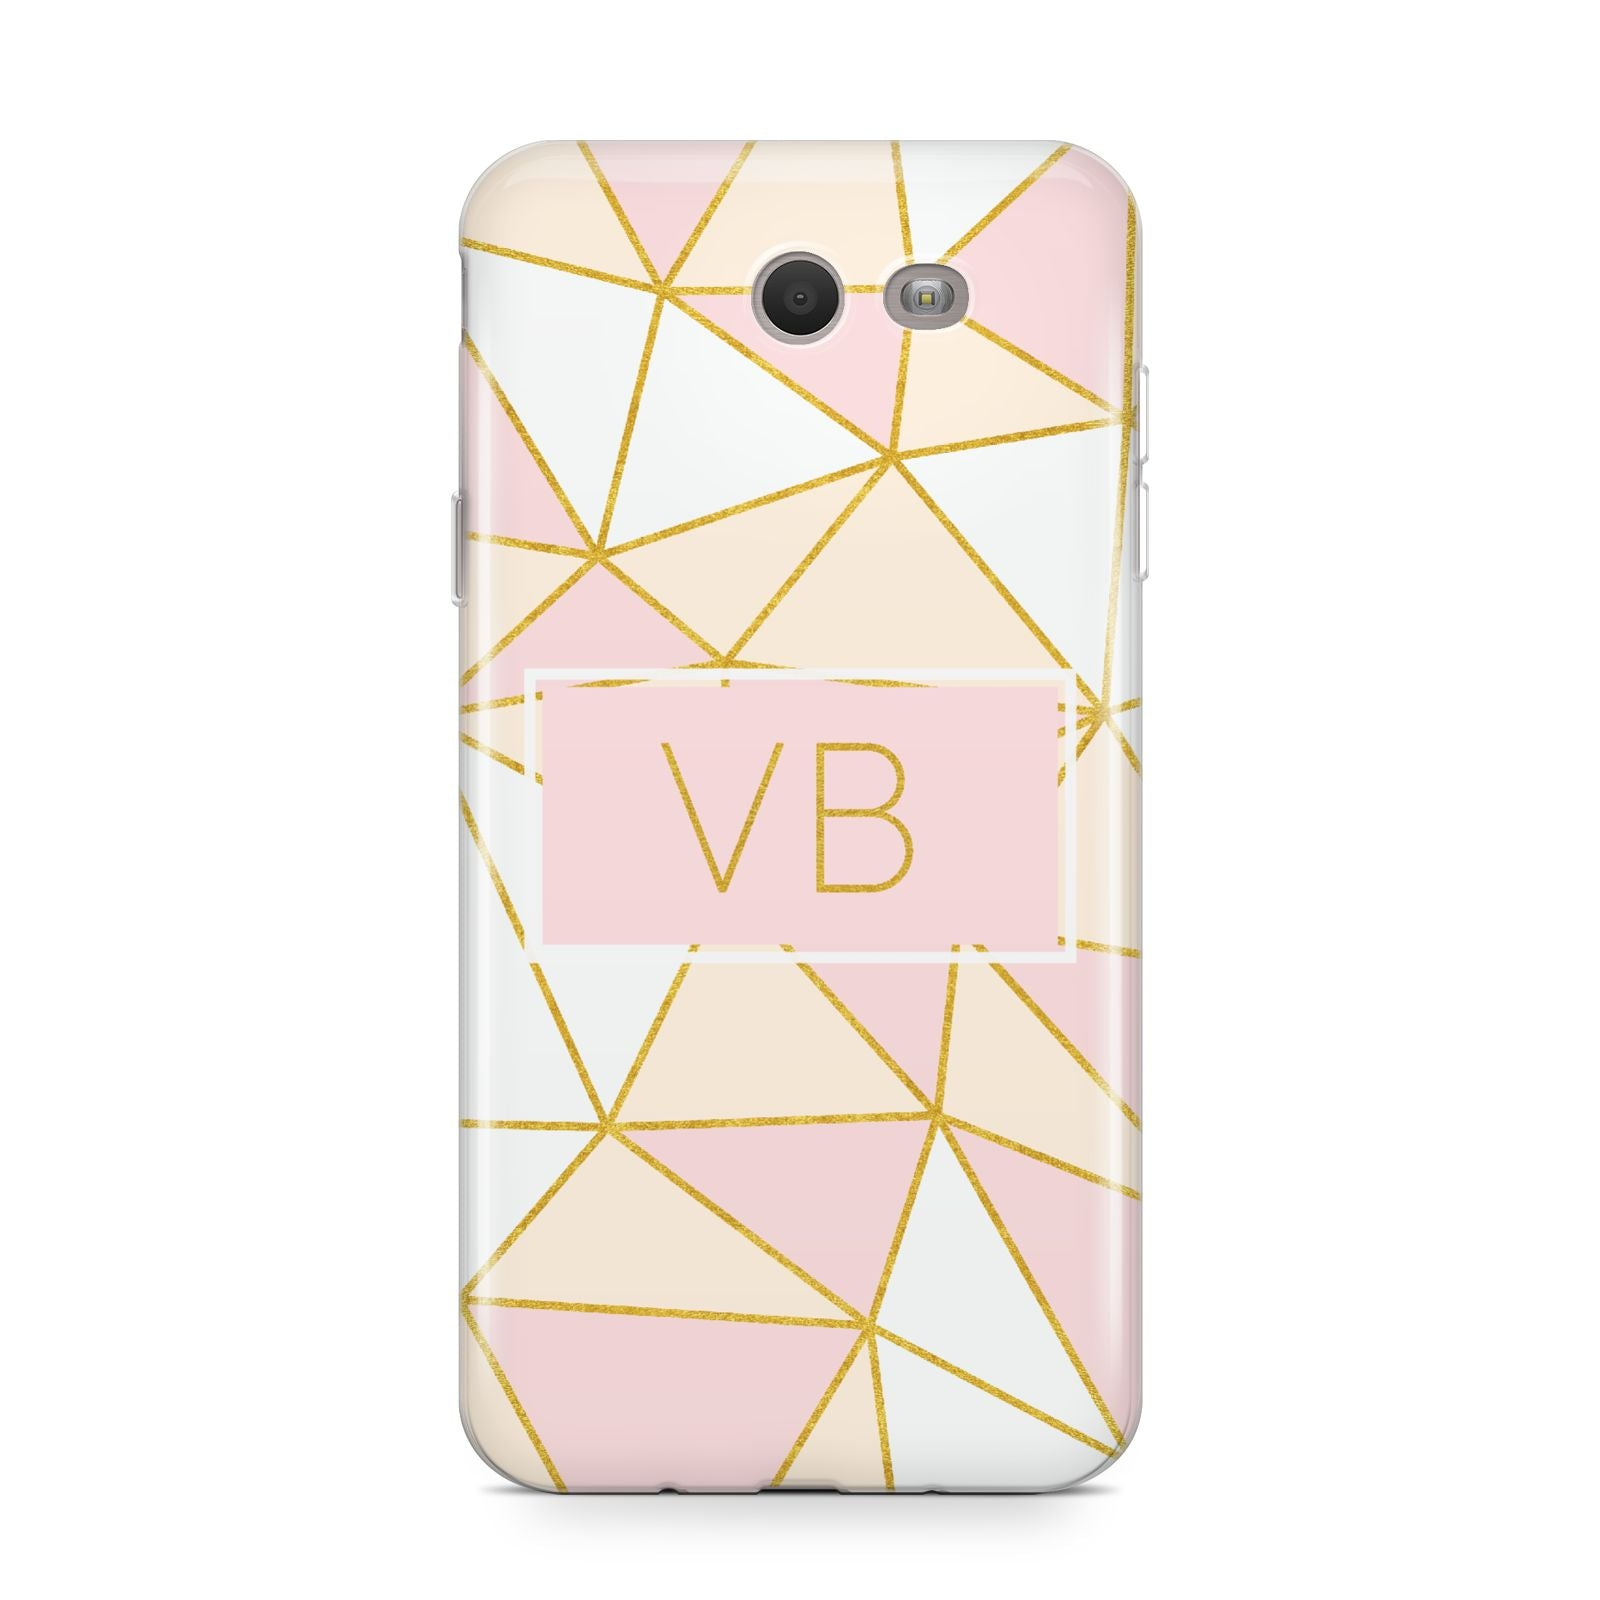 Personalised Gold Initials Geometric Samsung Galaxy J7 2017 Case